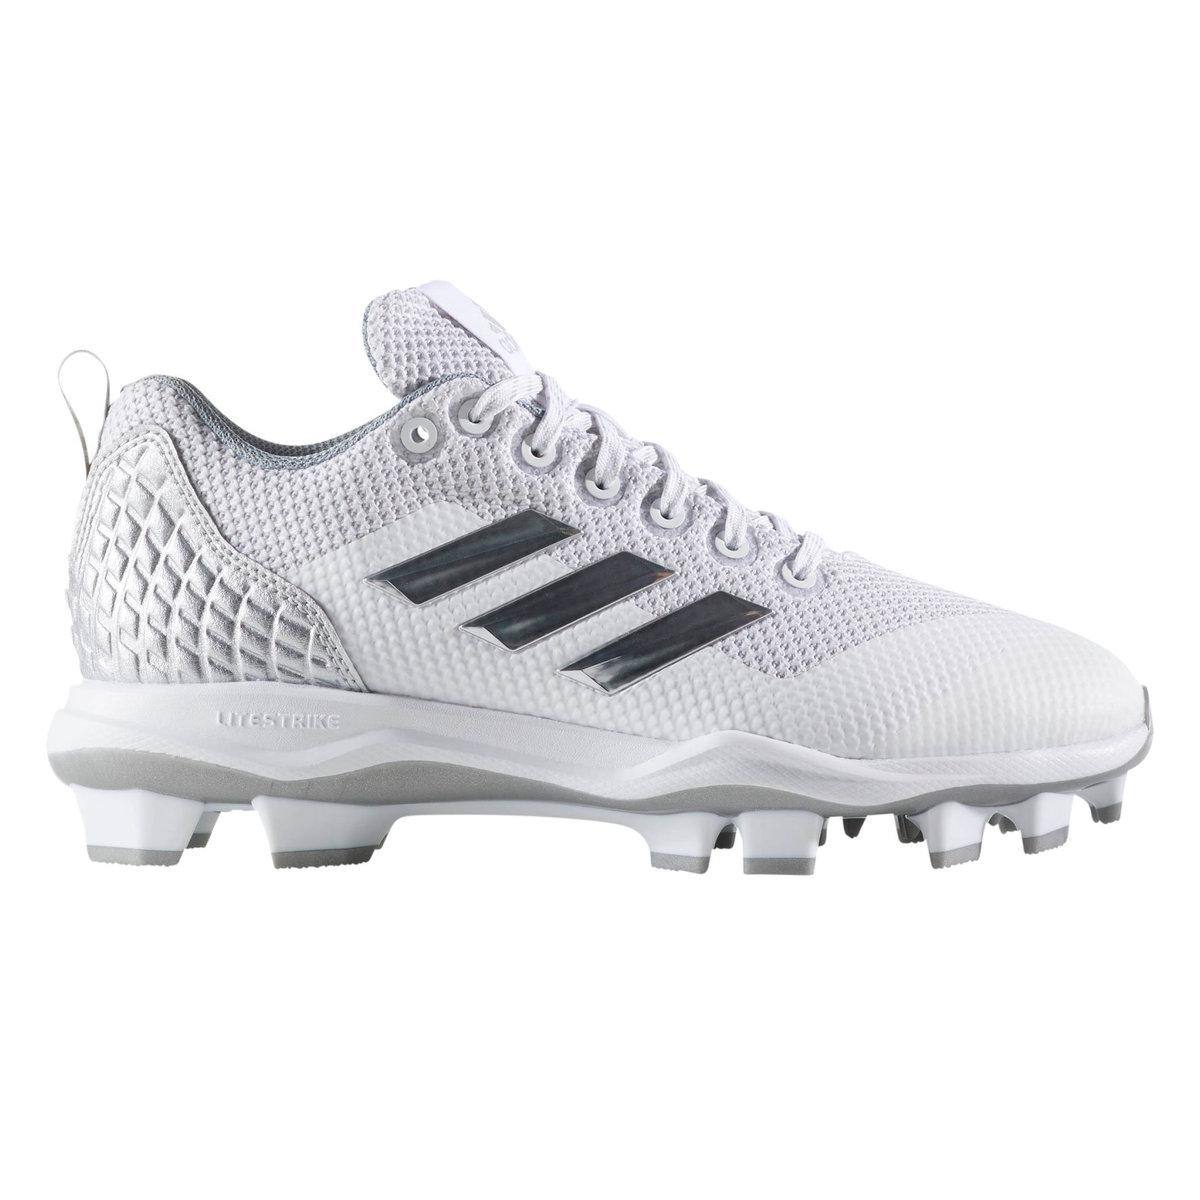 6141a41be94 adidas Poweralley 5 Tpu Softball Cleats – Womens in White - Lyst